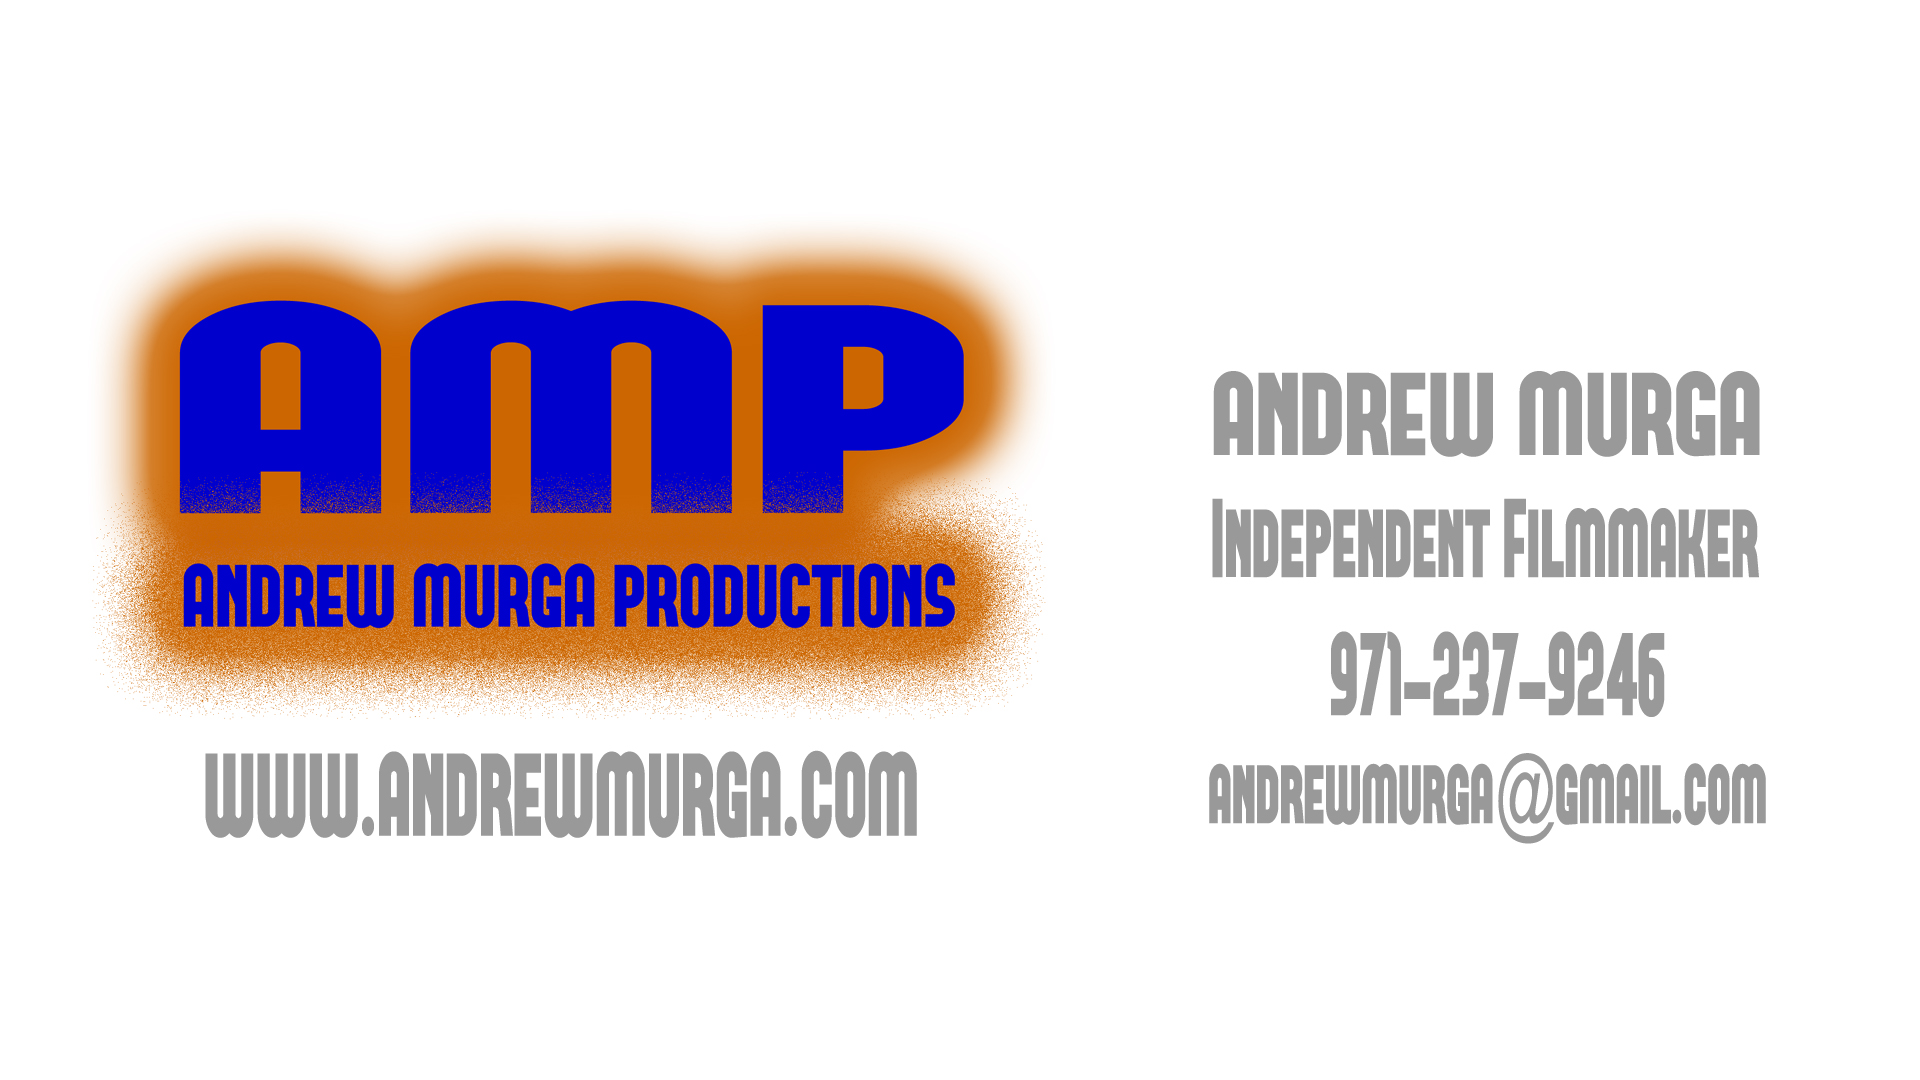 amp-card-front-copy